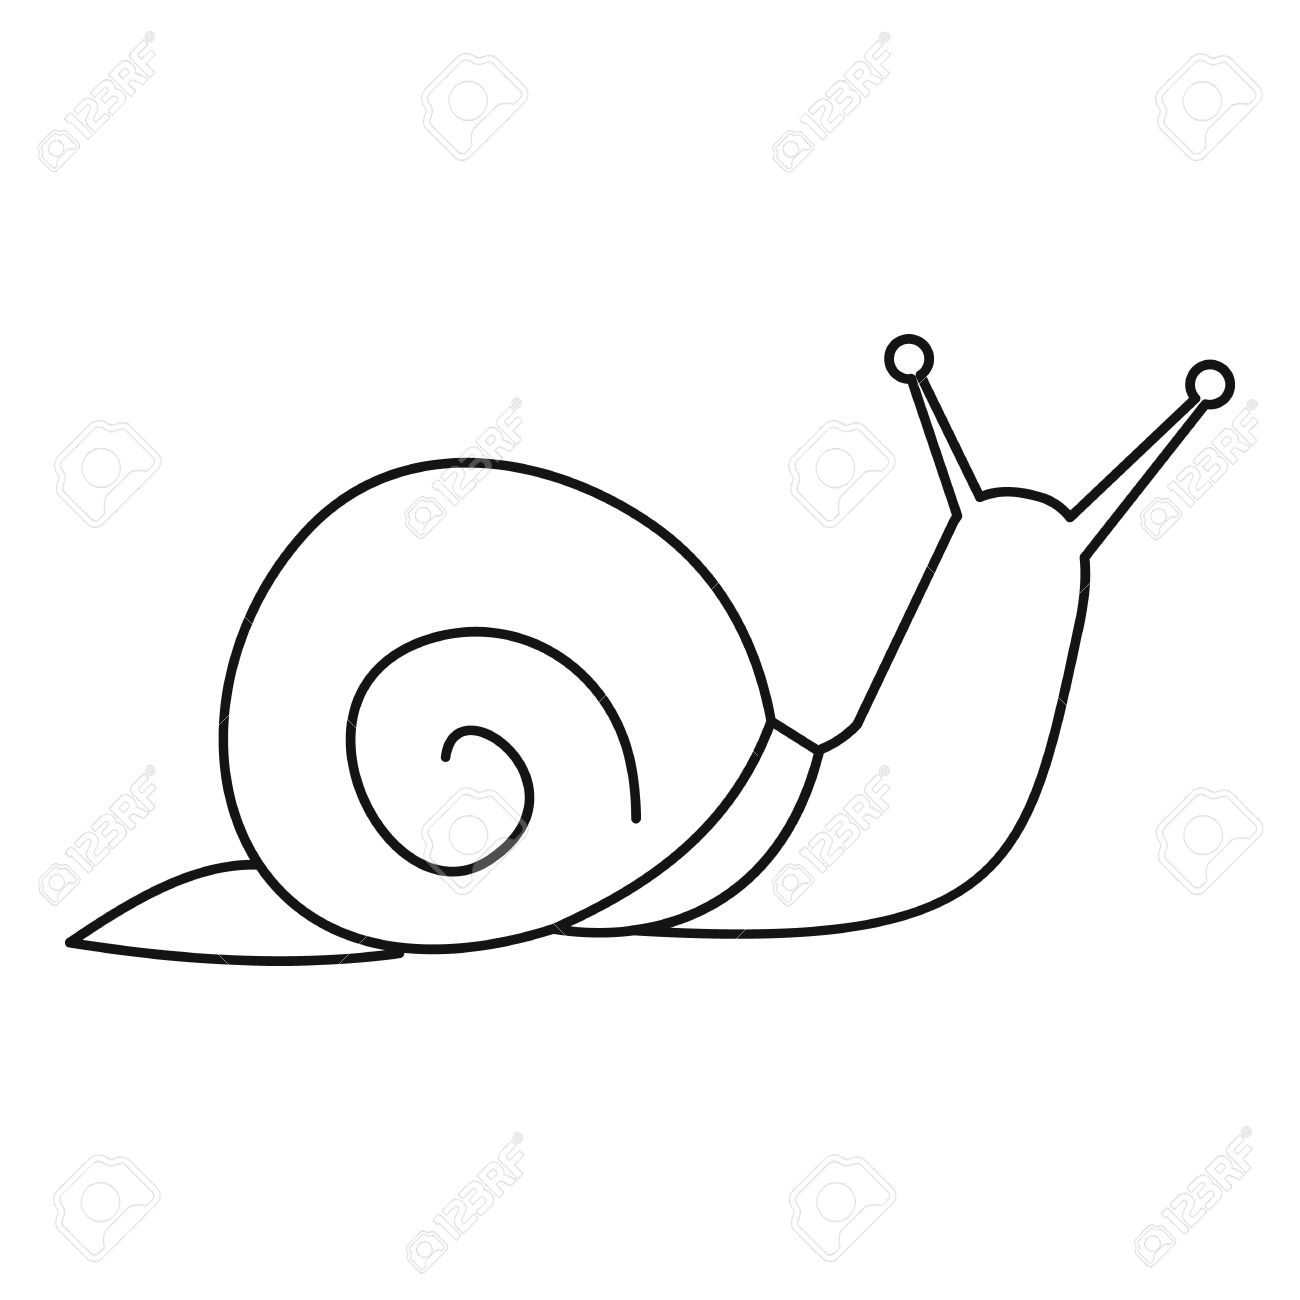 snail icon outline illustration of snail vector icon for web rh 123rf com